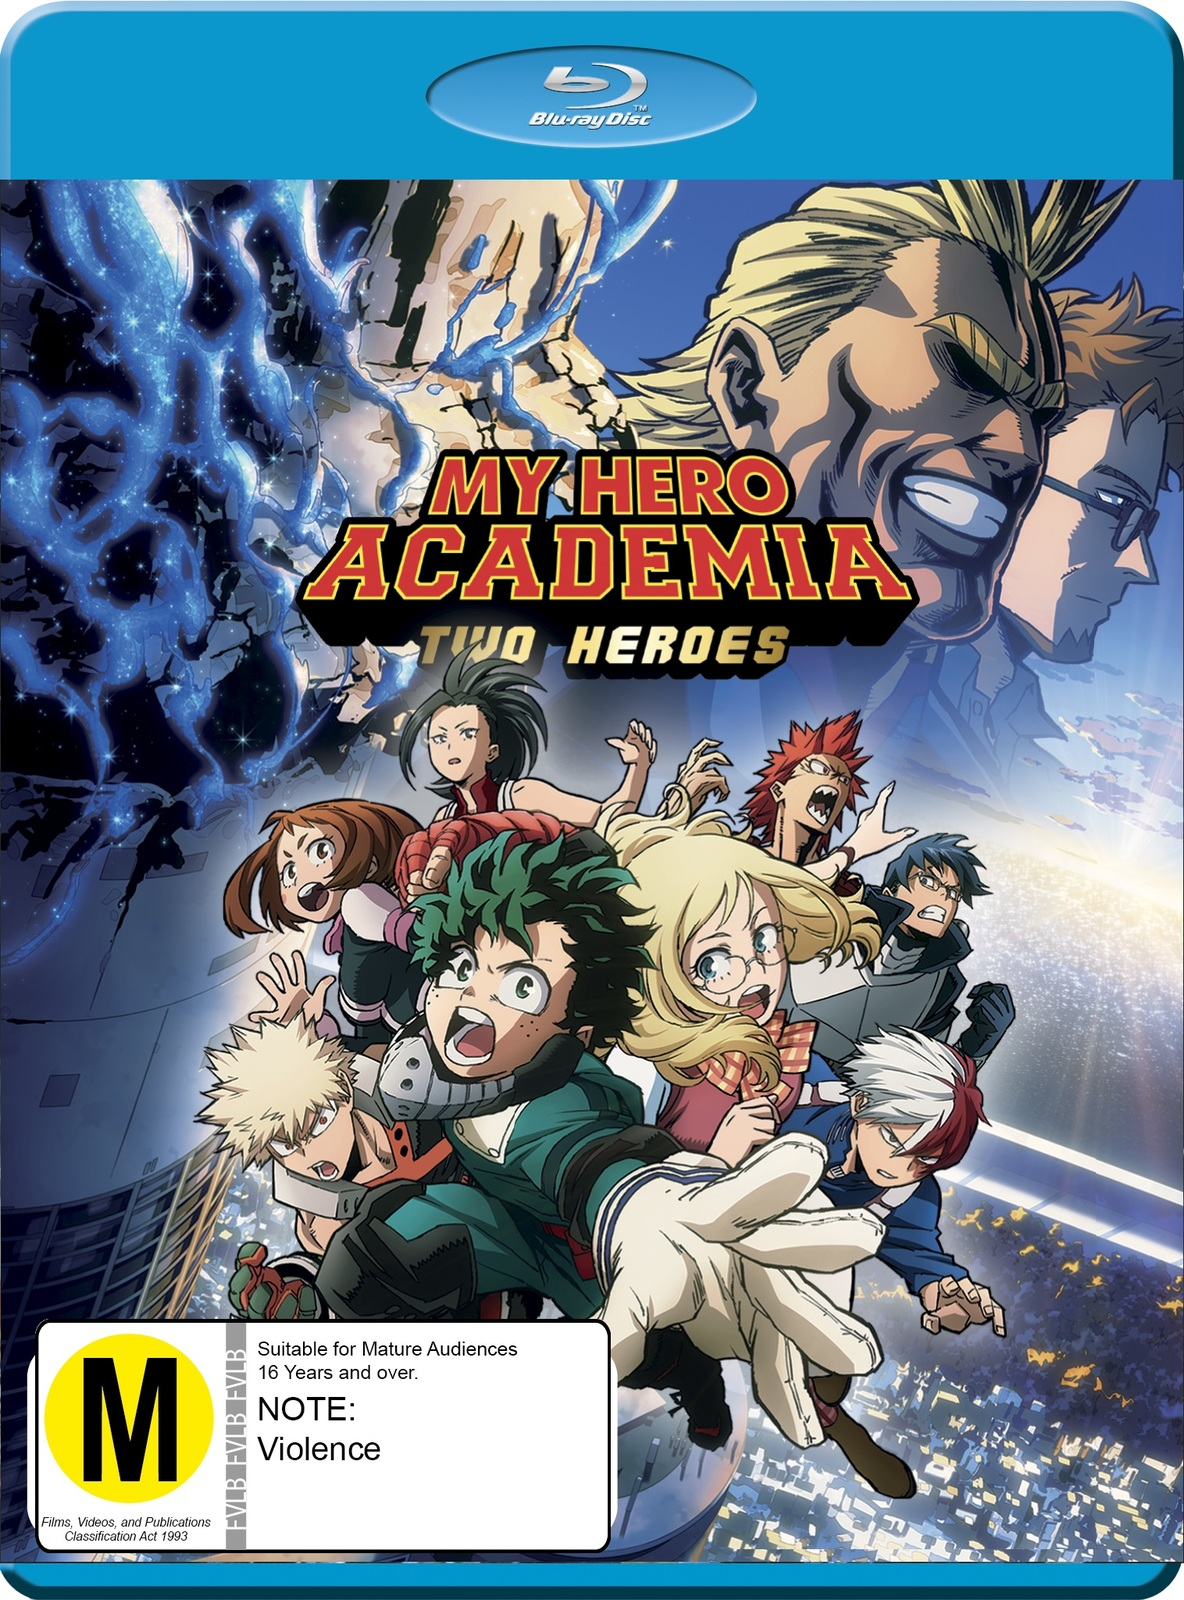 My Hero Academia Two Heroes Dvd Blu Ray In Stock Buy Now At Mighty Ape Nz